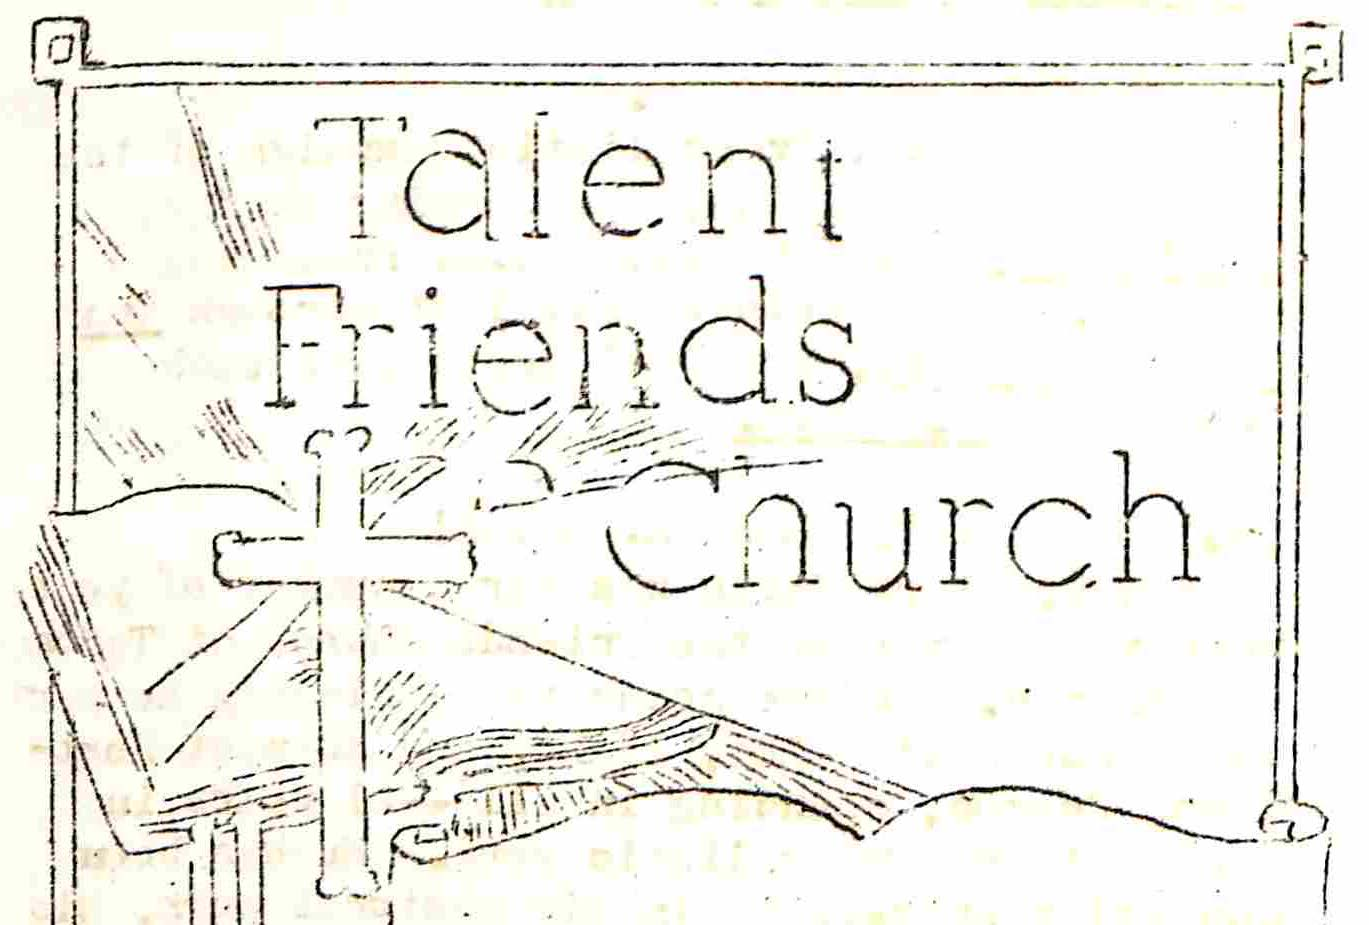 Talent Friends Church